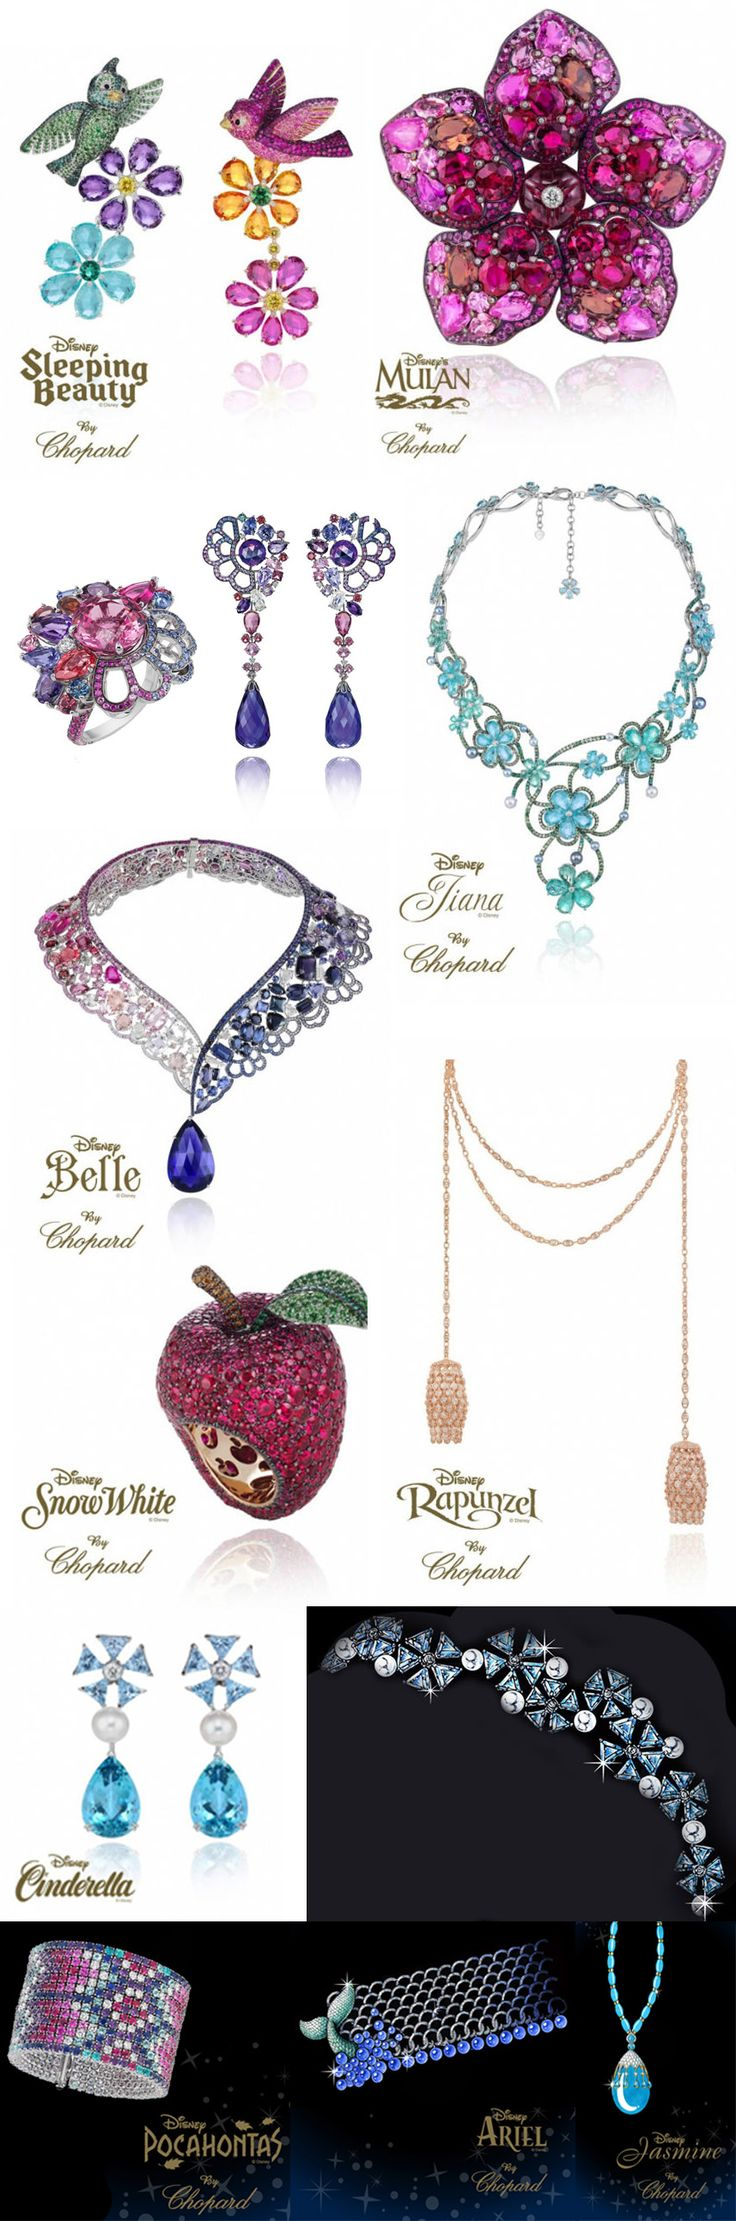 Chopard Disney Princess Jewelry Collection